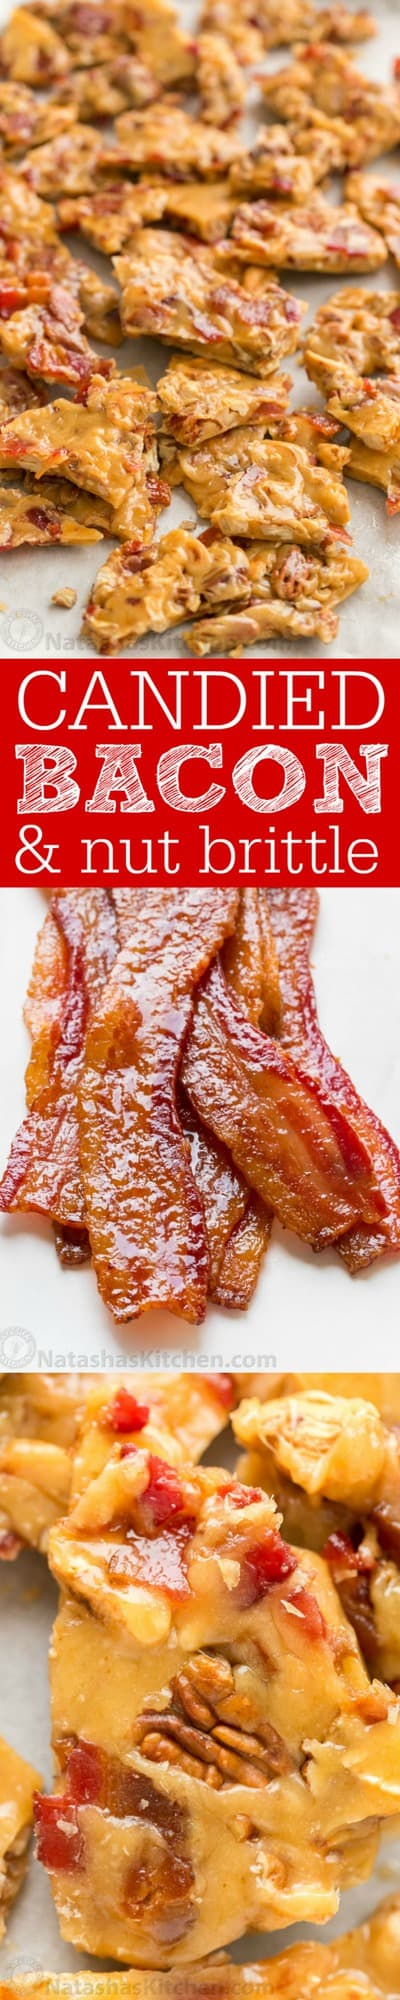 This Candied Bacon Brittle is loaded with nuts and candied bacon. It's unusual but CRAZY GOOD! Candied Bacon Brittle is a wonderful homemade gift idea! | natashaskitchen.com